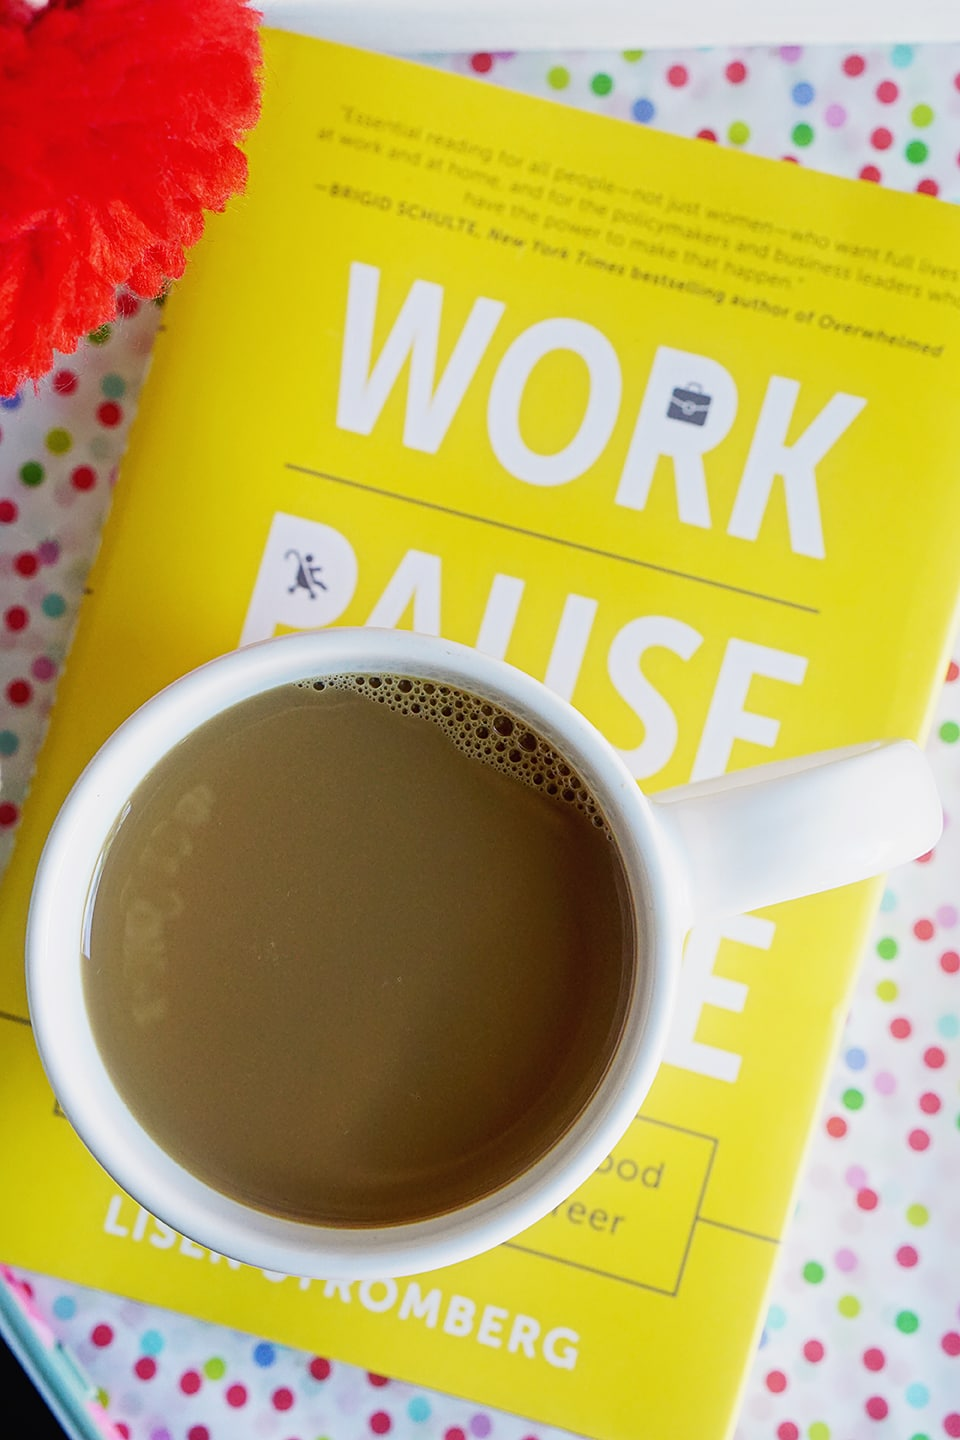 Work Pause Thrive